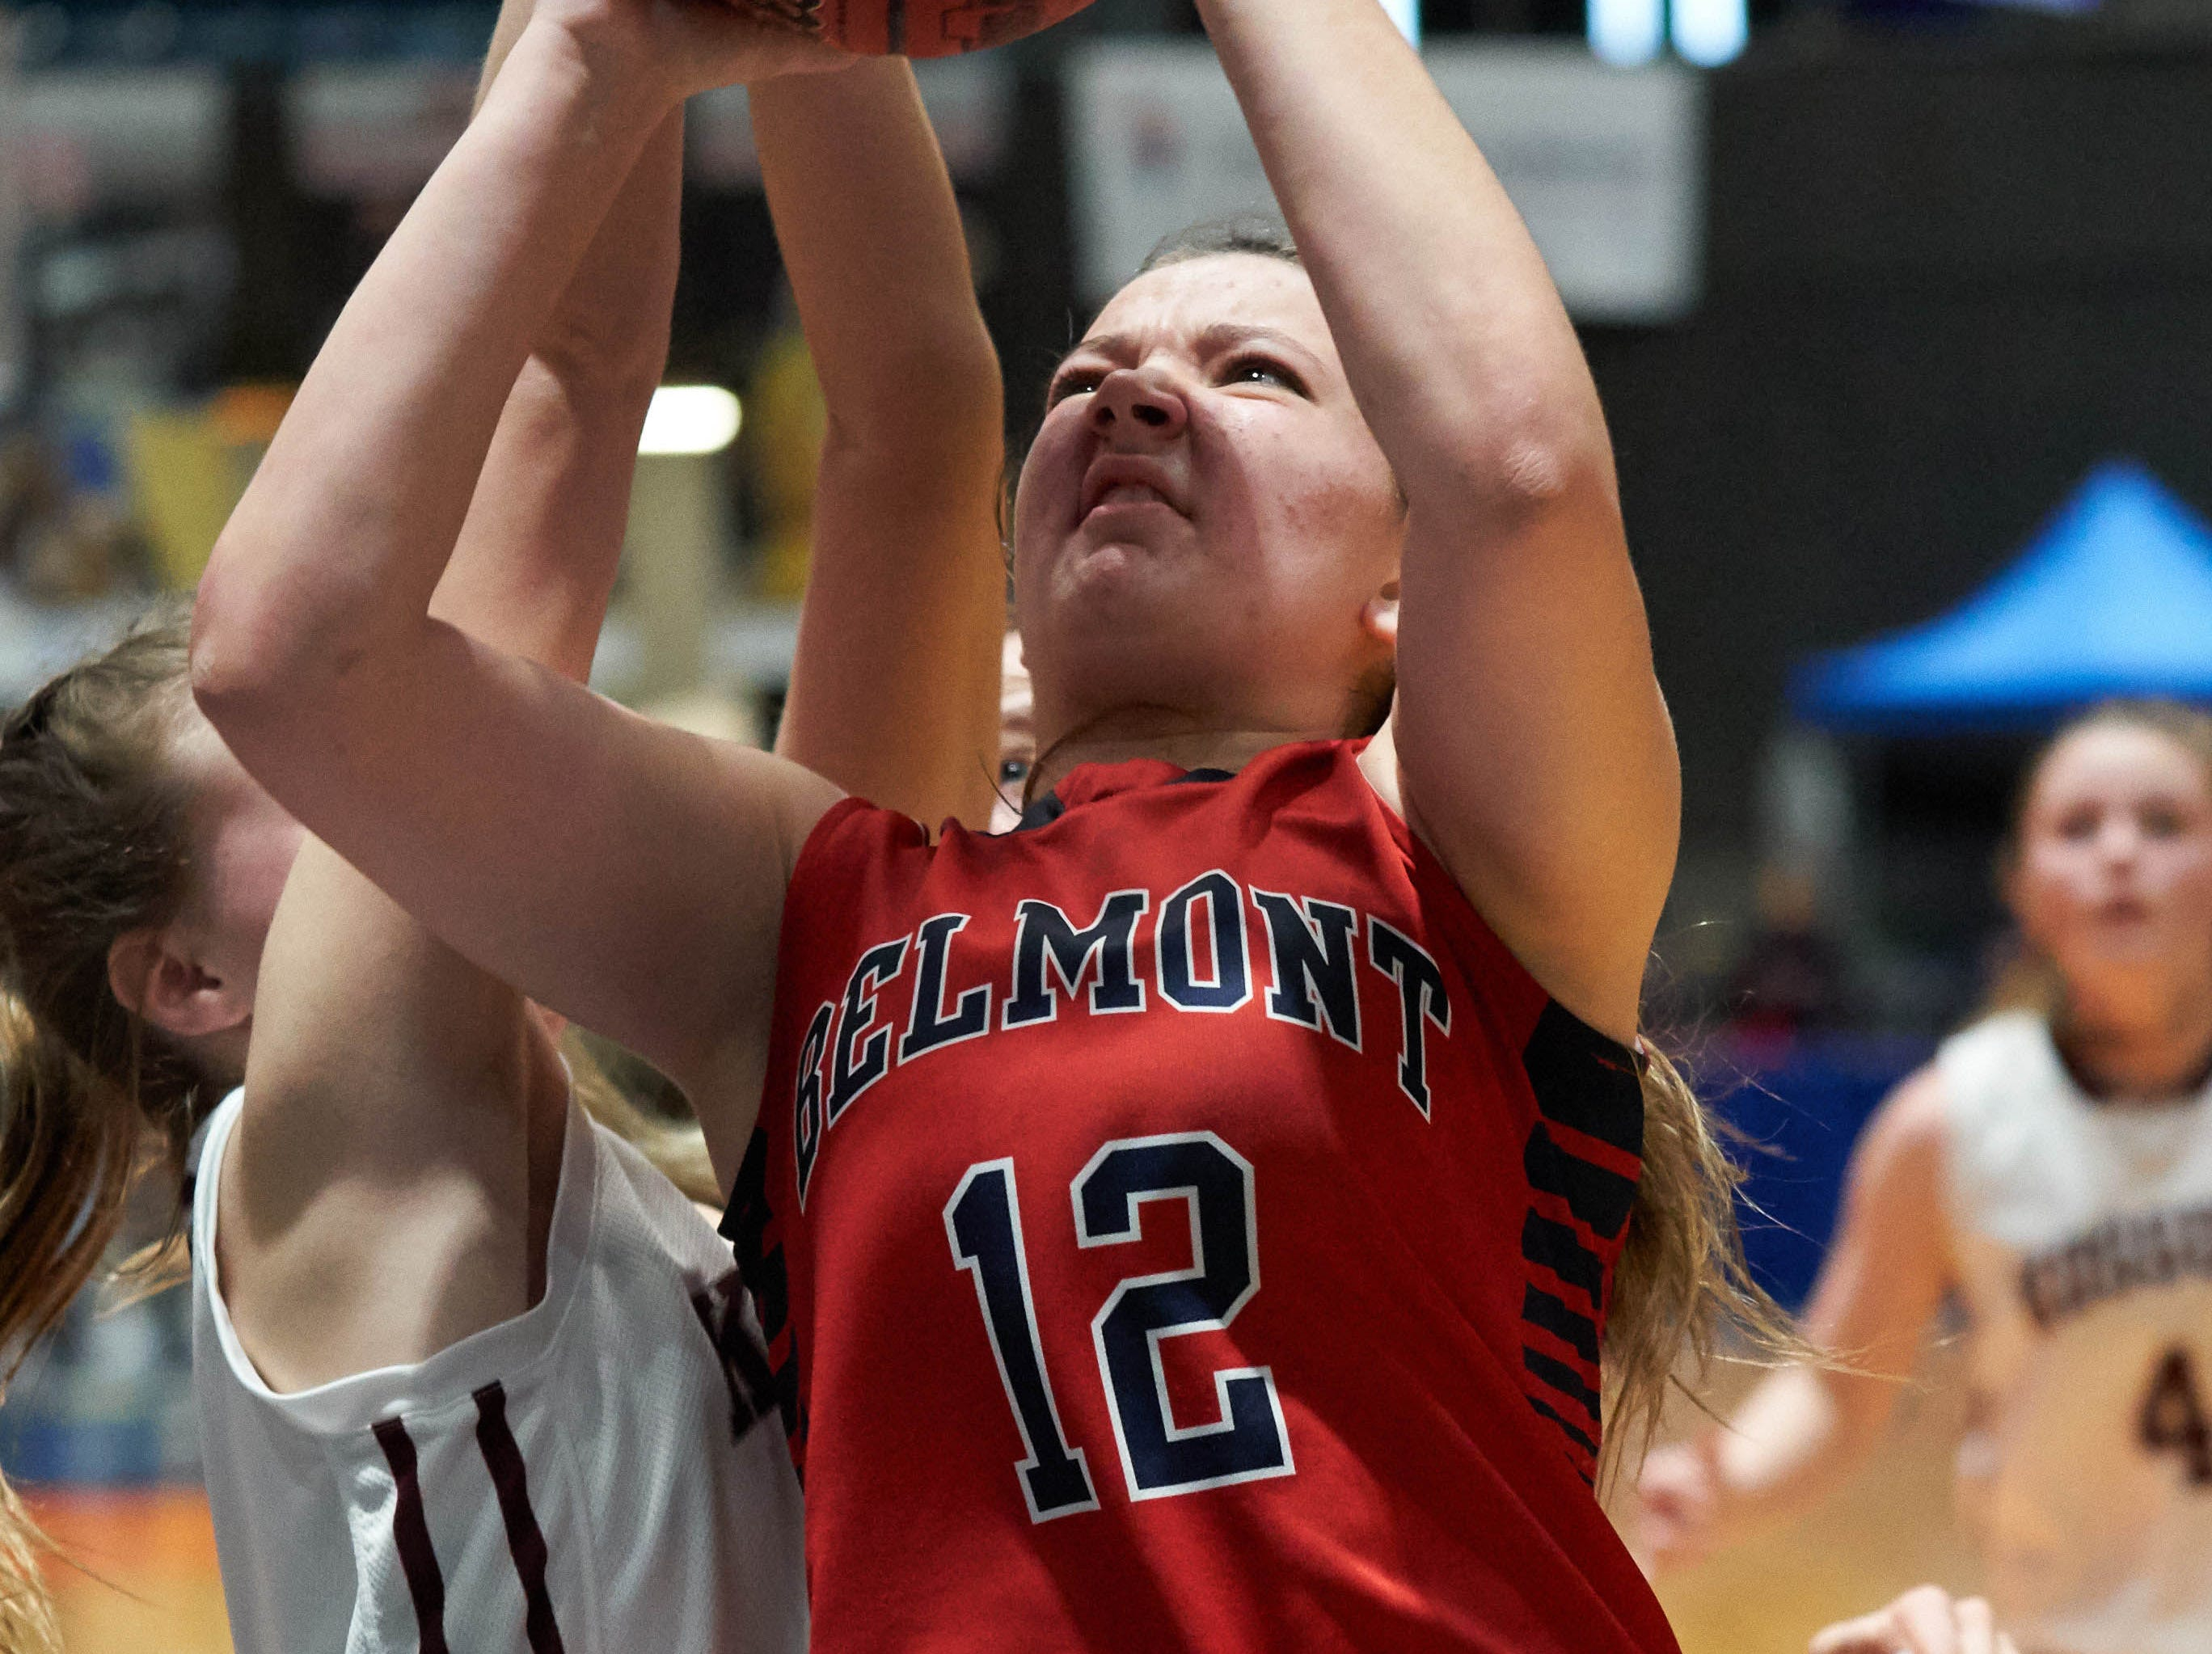 Belmont's Lacie Walker (12) drives during the MHSAA 3A Girls Basketball Championship Finals held at the Mississippi Coliseum in Jackson, MS, Saturday March 9th, 2019.(Bob Smith)